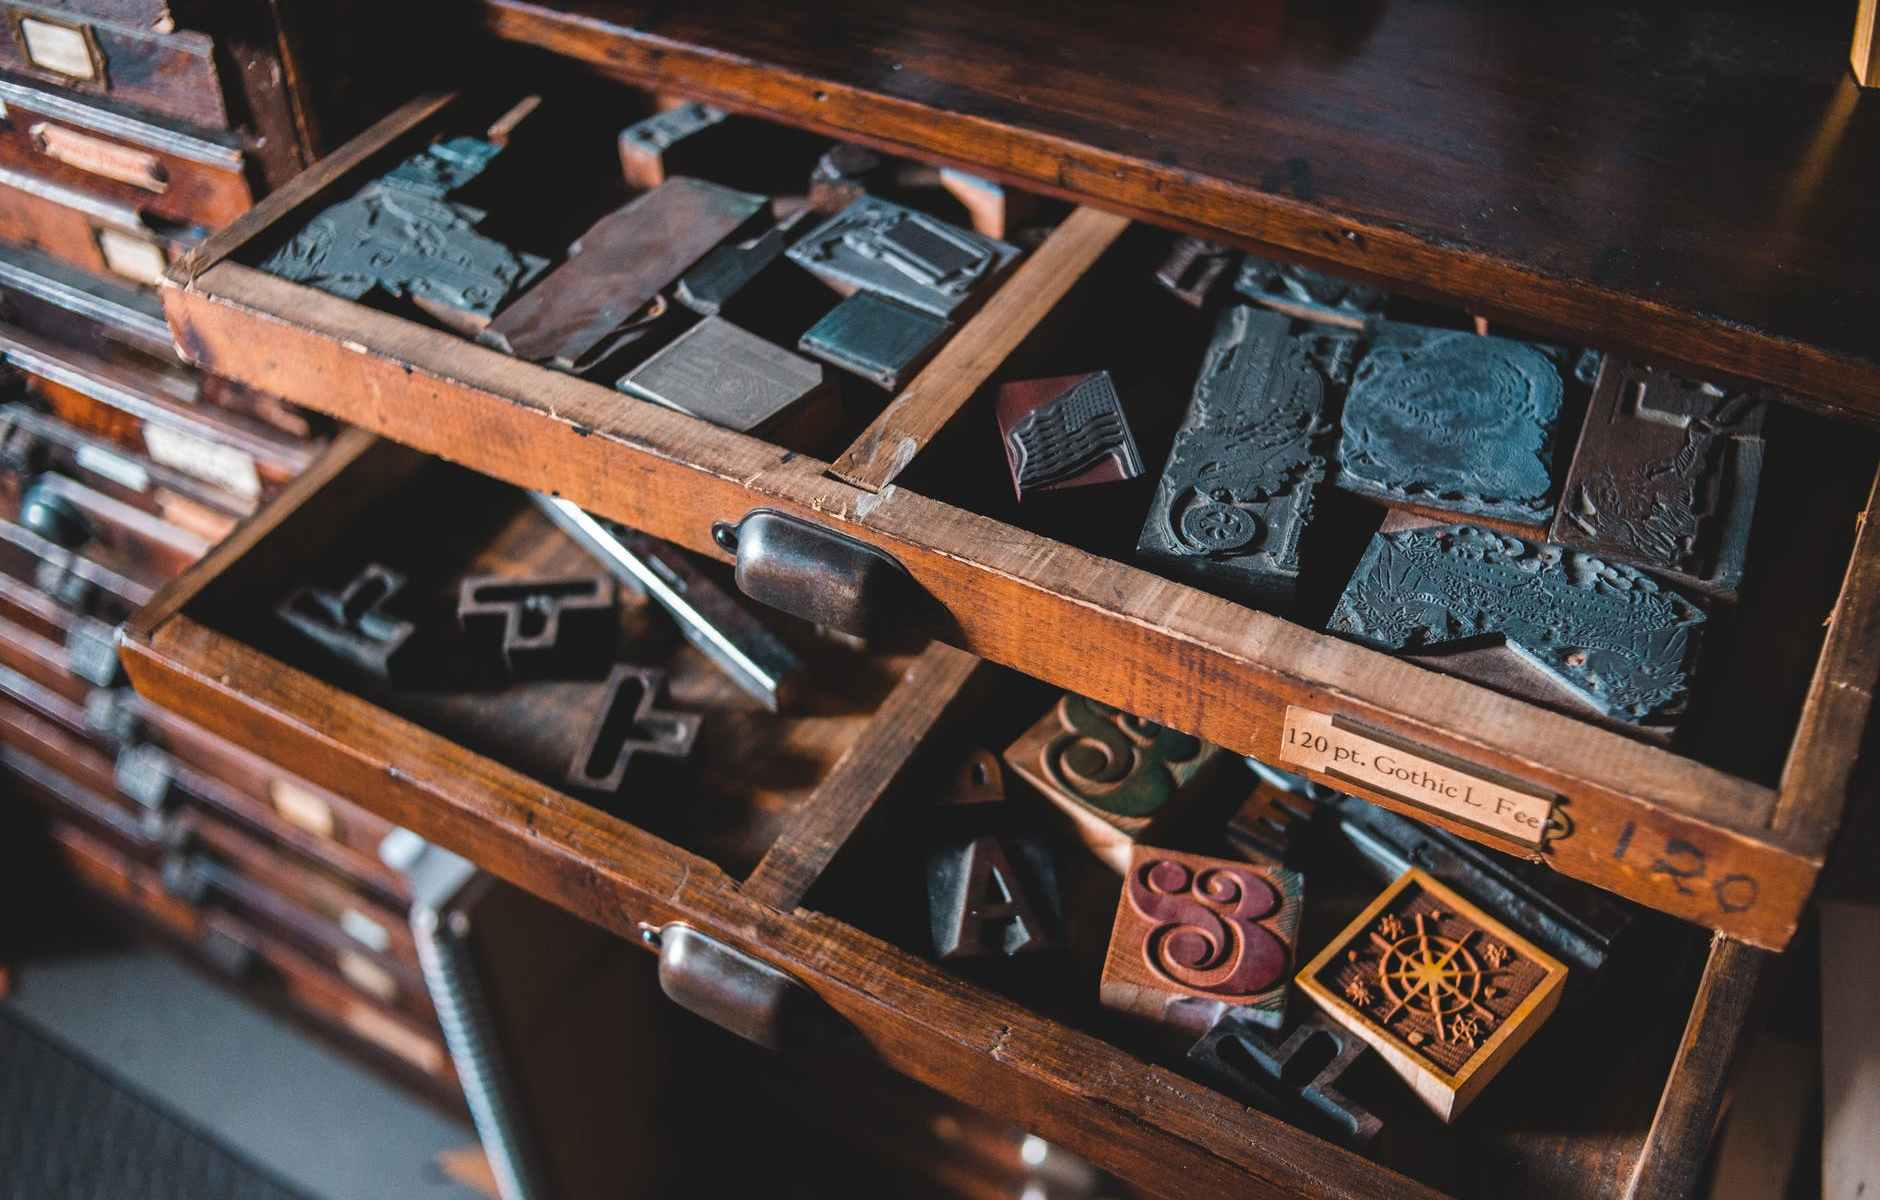 cabinet drawers with various vintage letterpress